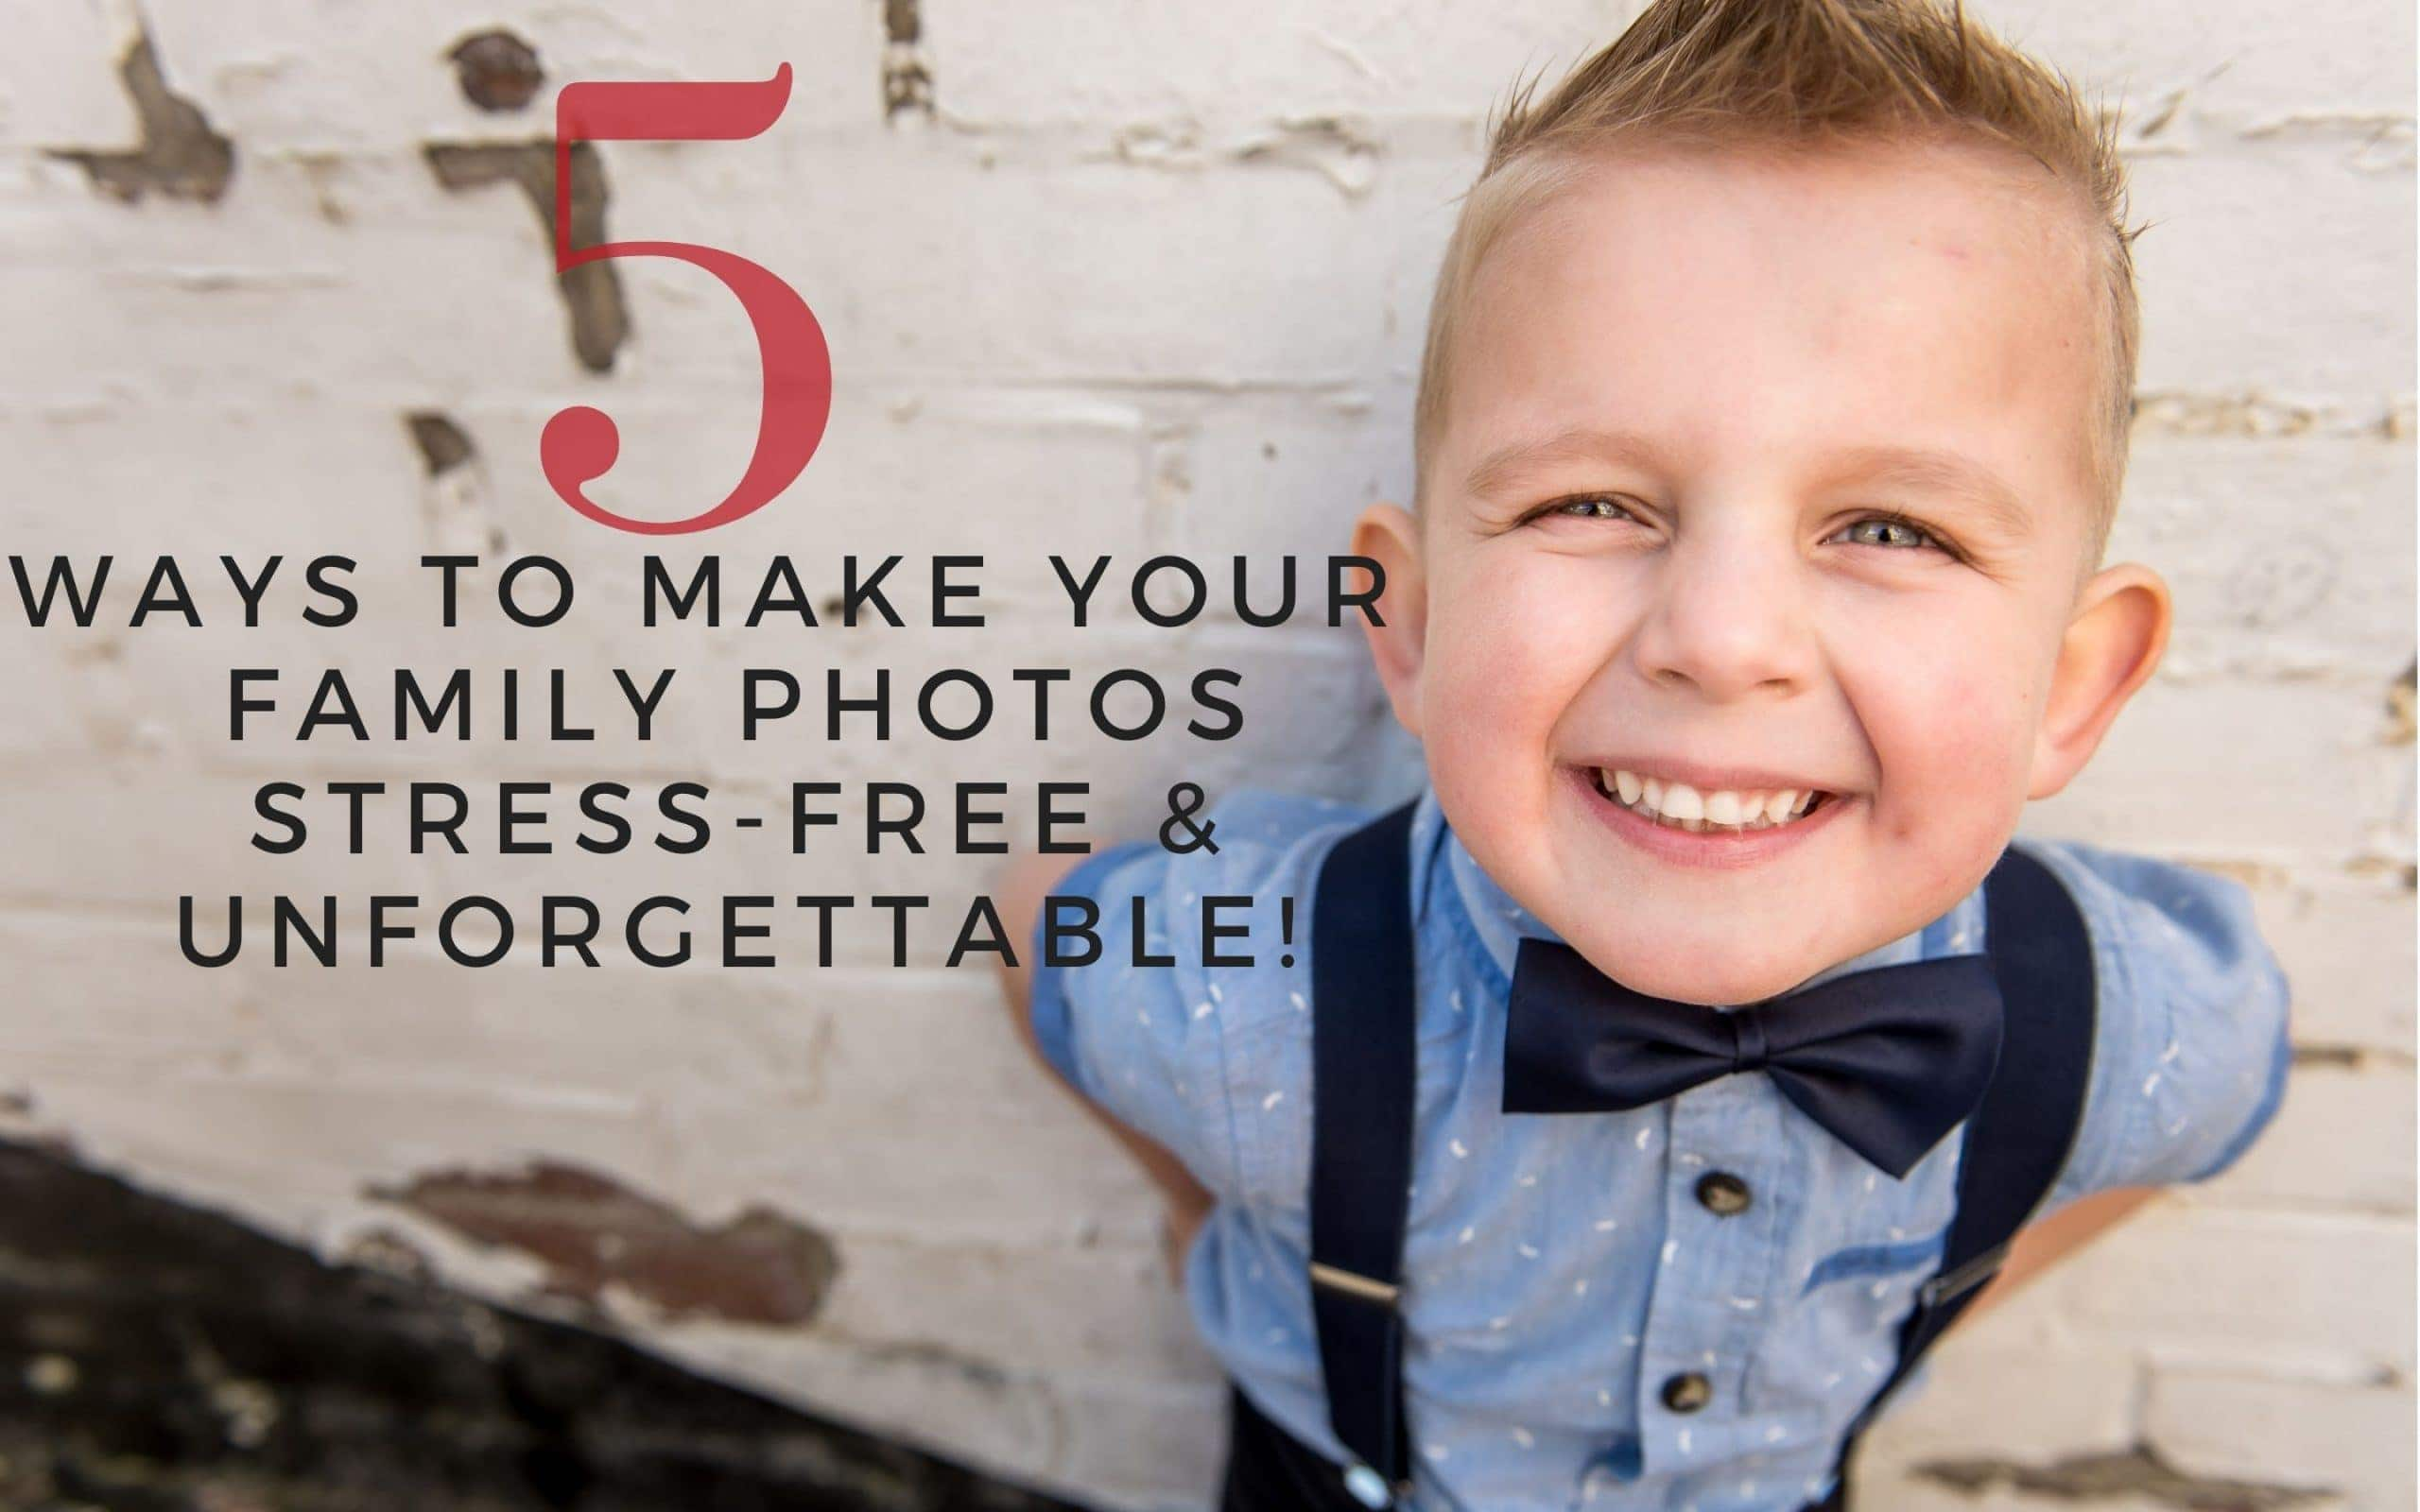 st albans family photography ideas